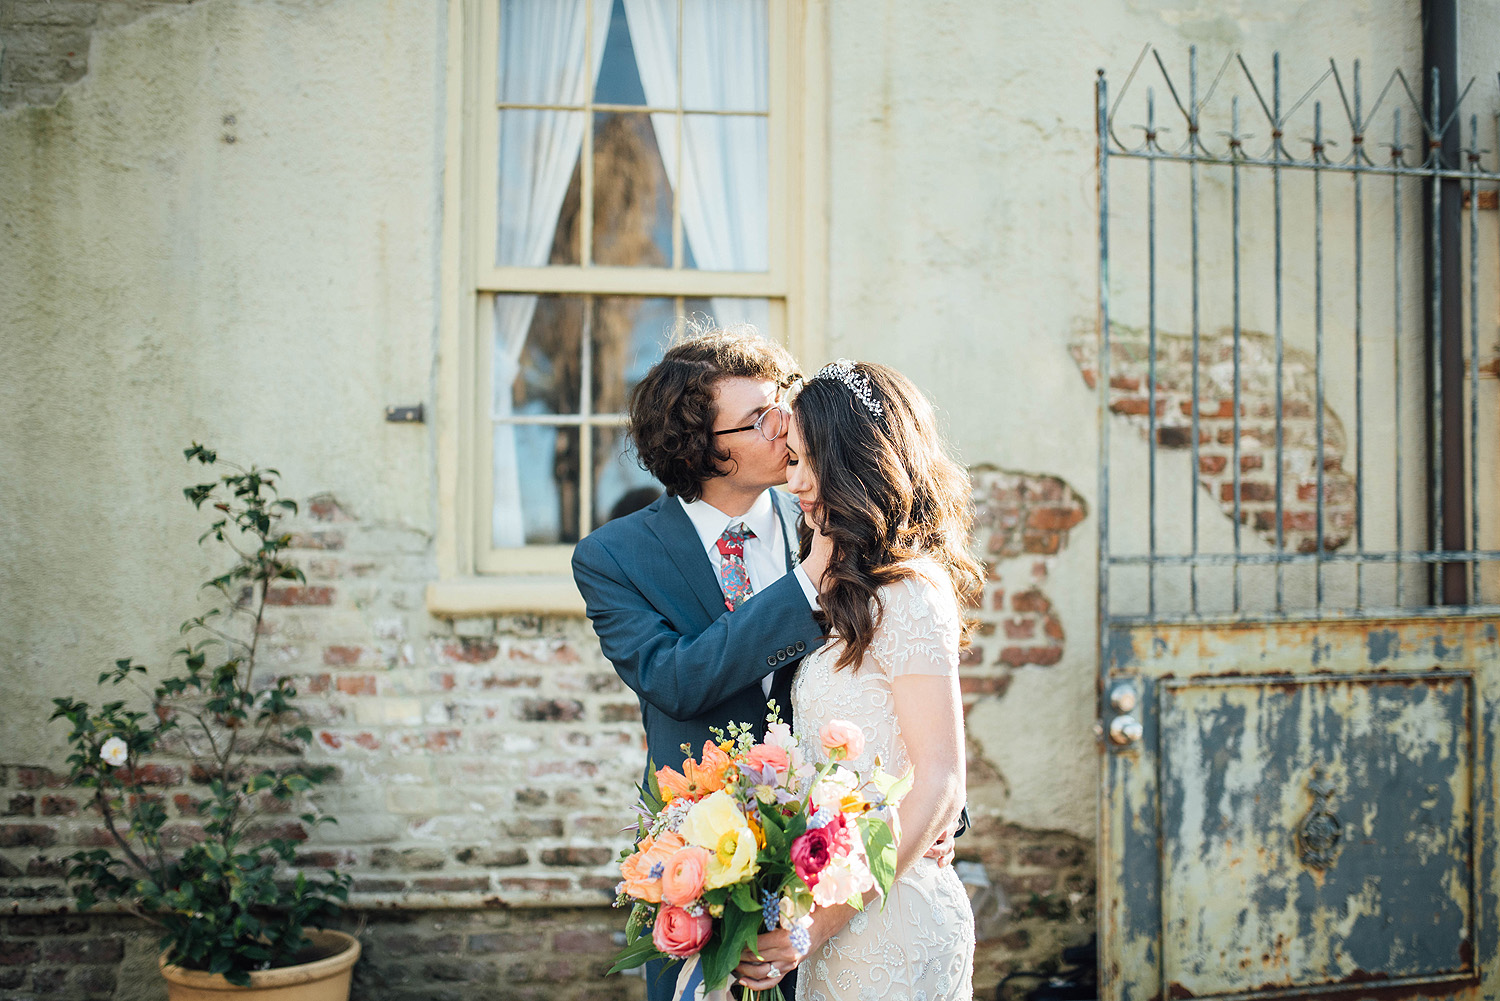 Juliet + Michael-race-and-religious-new-orleans-wedding_Gabby Chapin_Online_0300.jpg